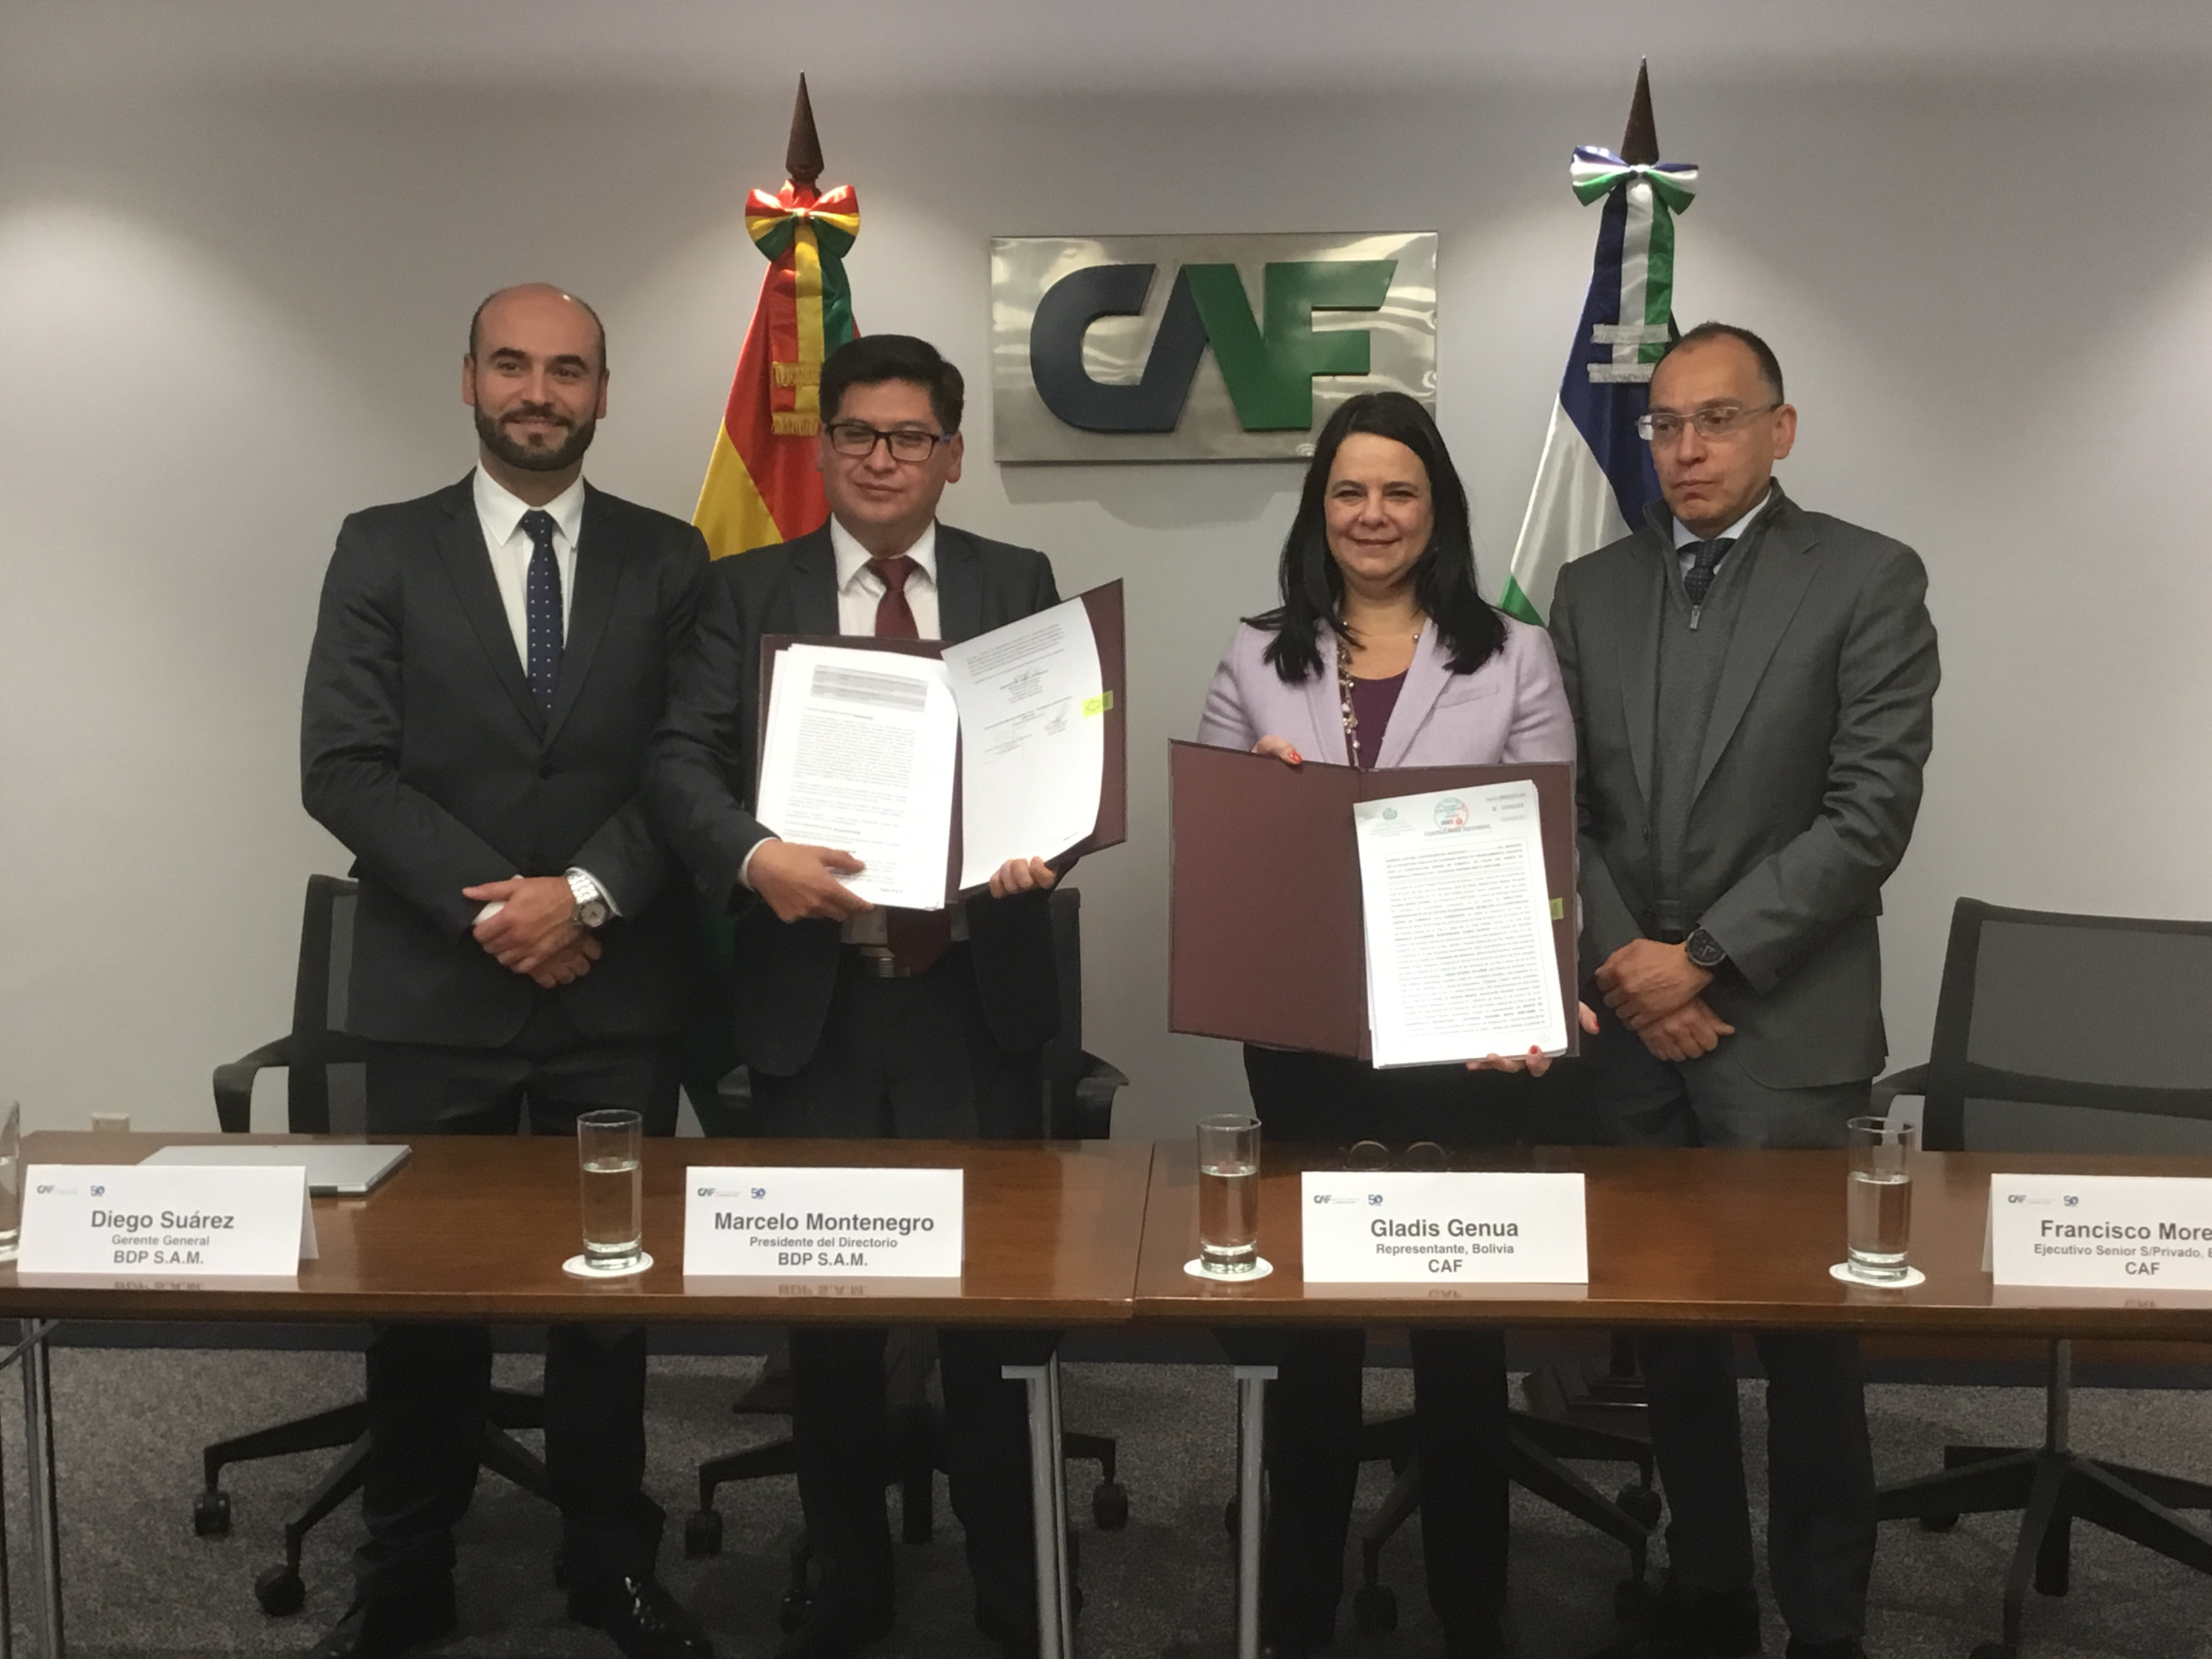 CAF Approves $10 Million Line of Credit to Strengthen the Productive Development Bank of Bolivia